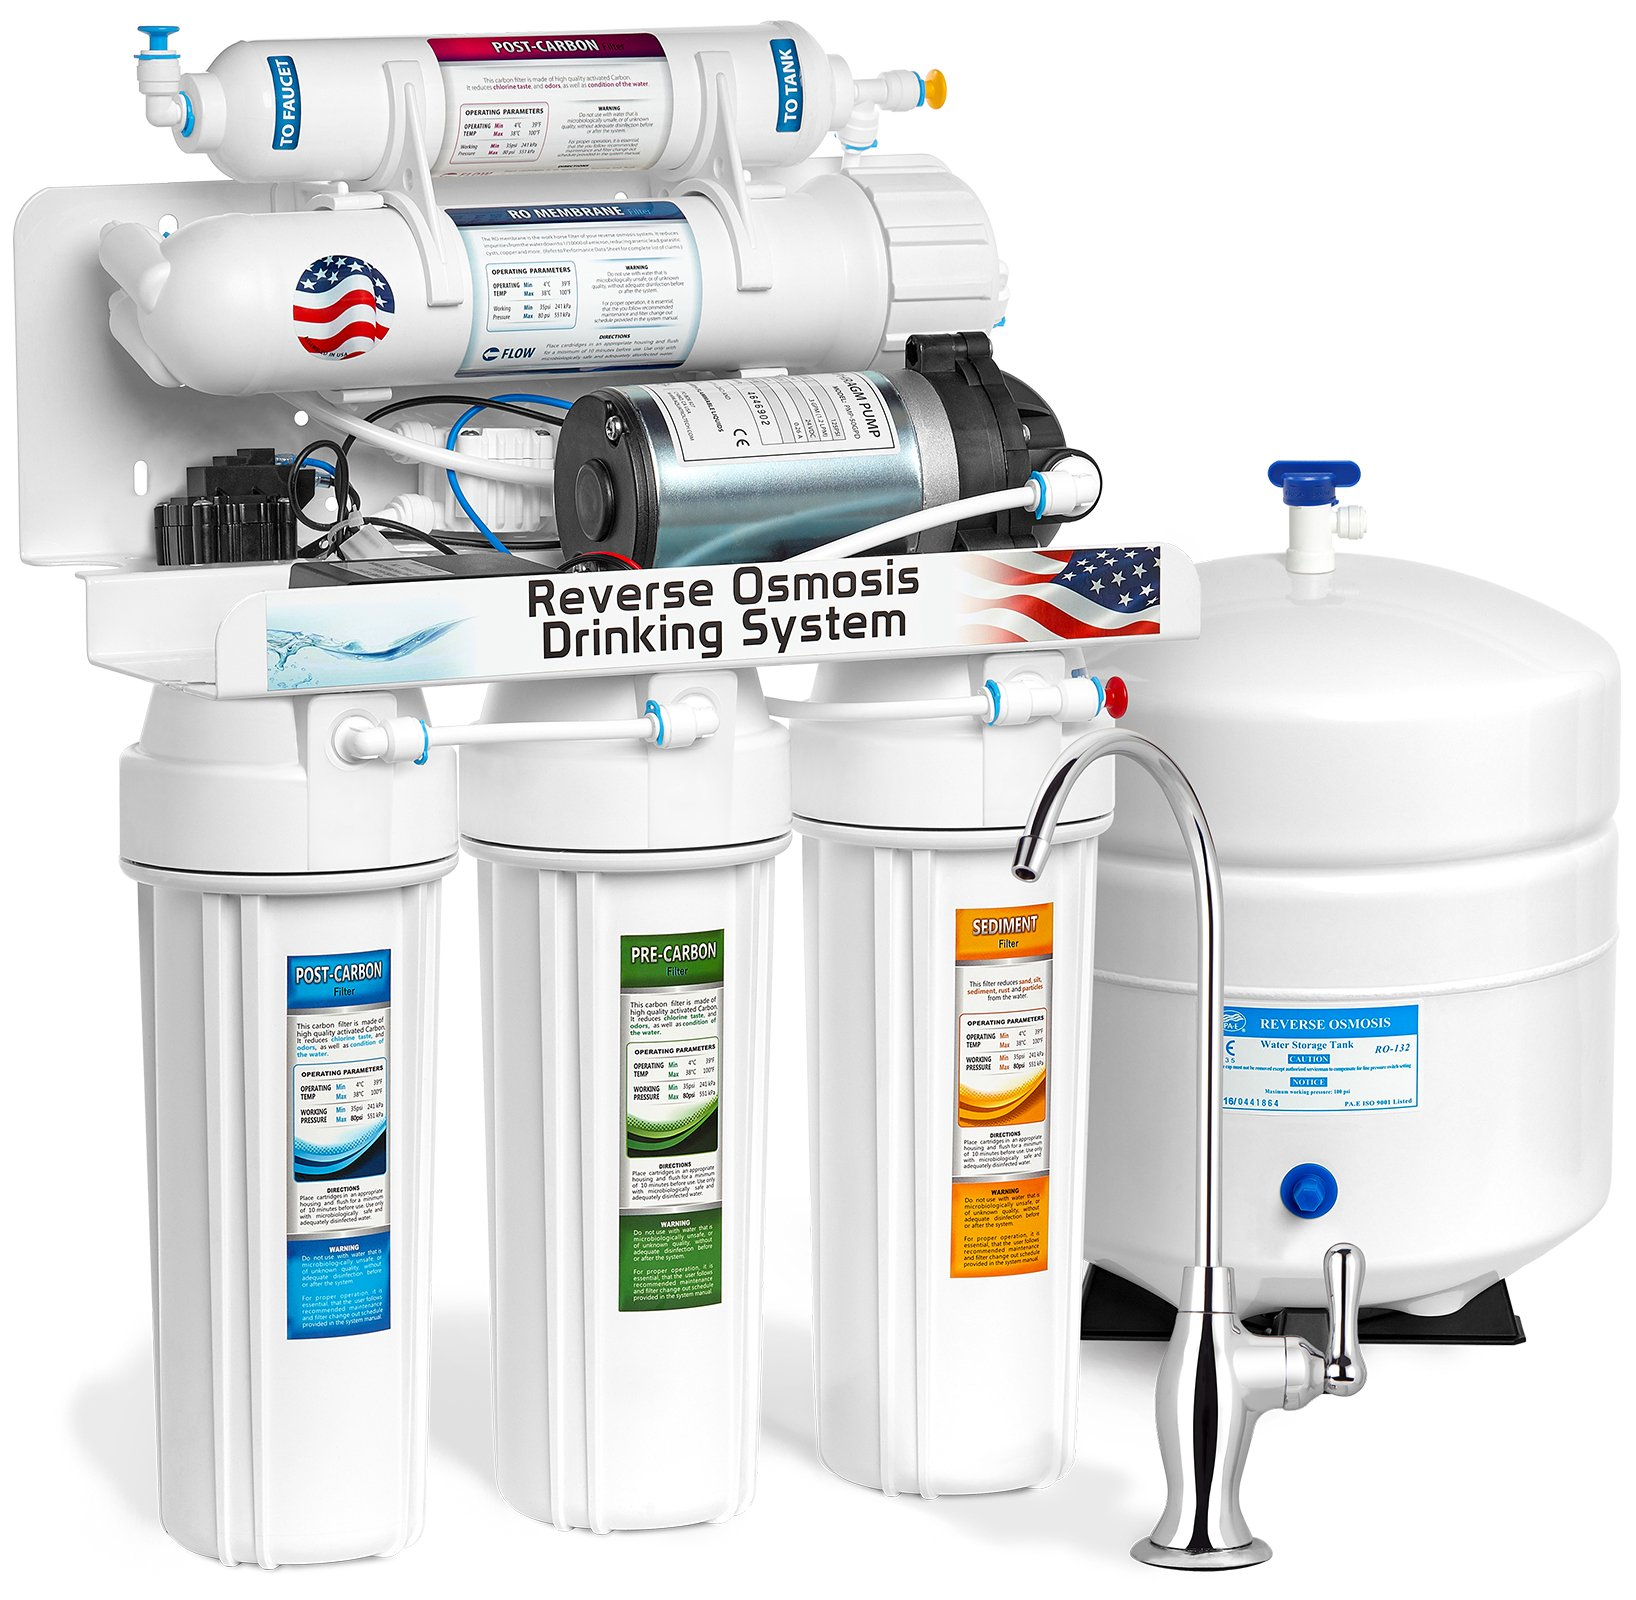 Express Water RO10DPU 5 Stage Reverse Osmosis Drinking Water Undersink Filtration System Plus RO Booster Pump - 100 GPD Membrane Capacity, White